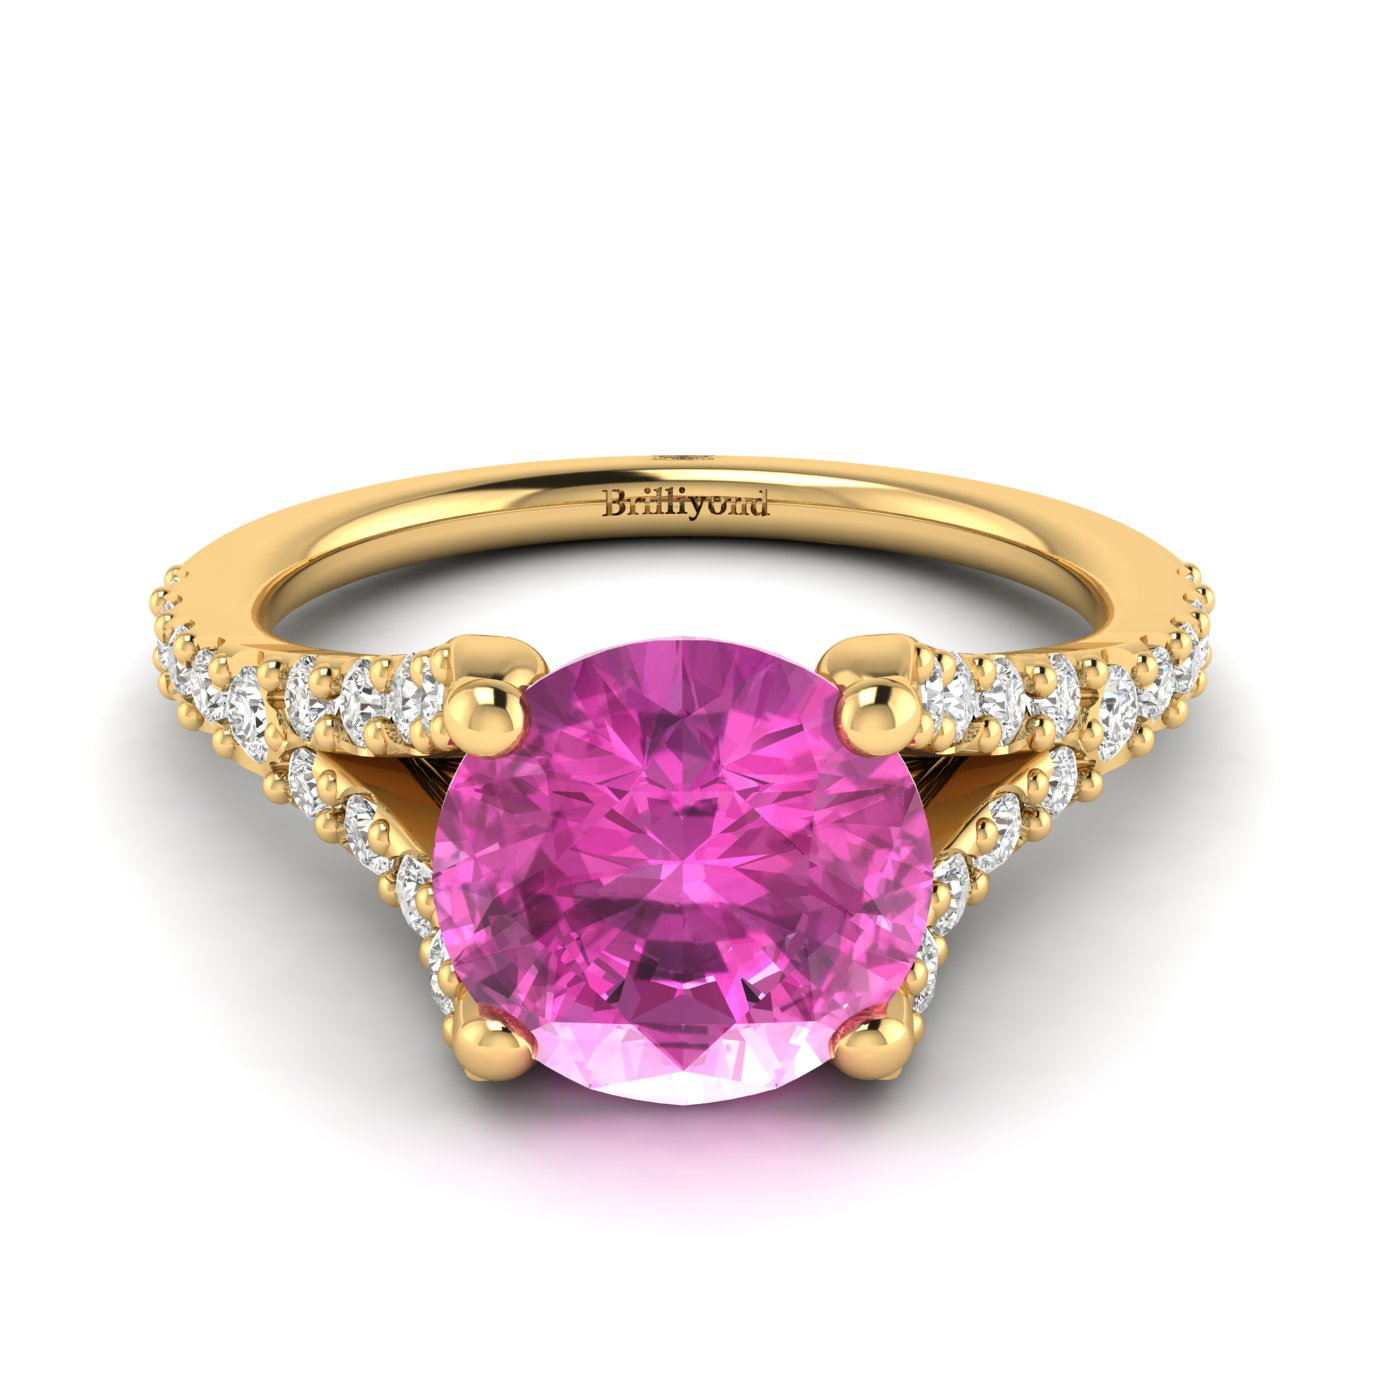 A natural pink Ceylon sapphire centre stone with 26 white created diamond accent stones.